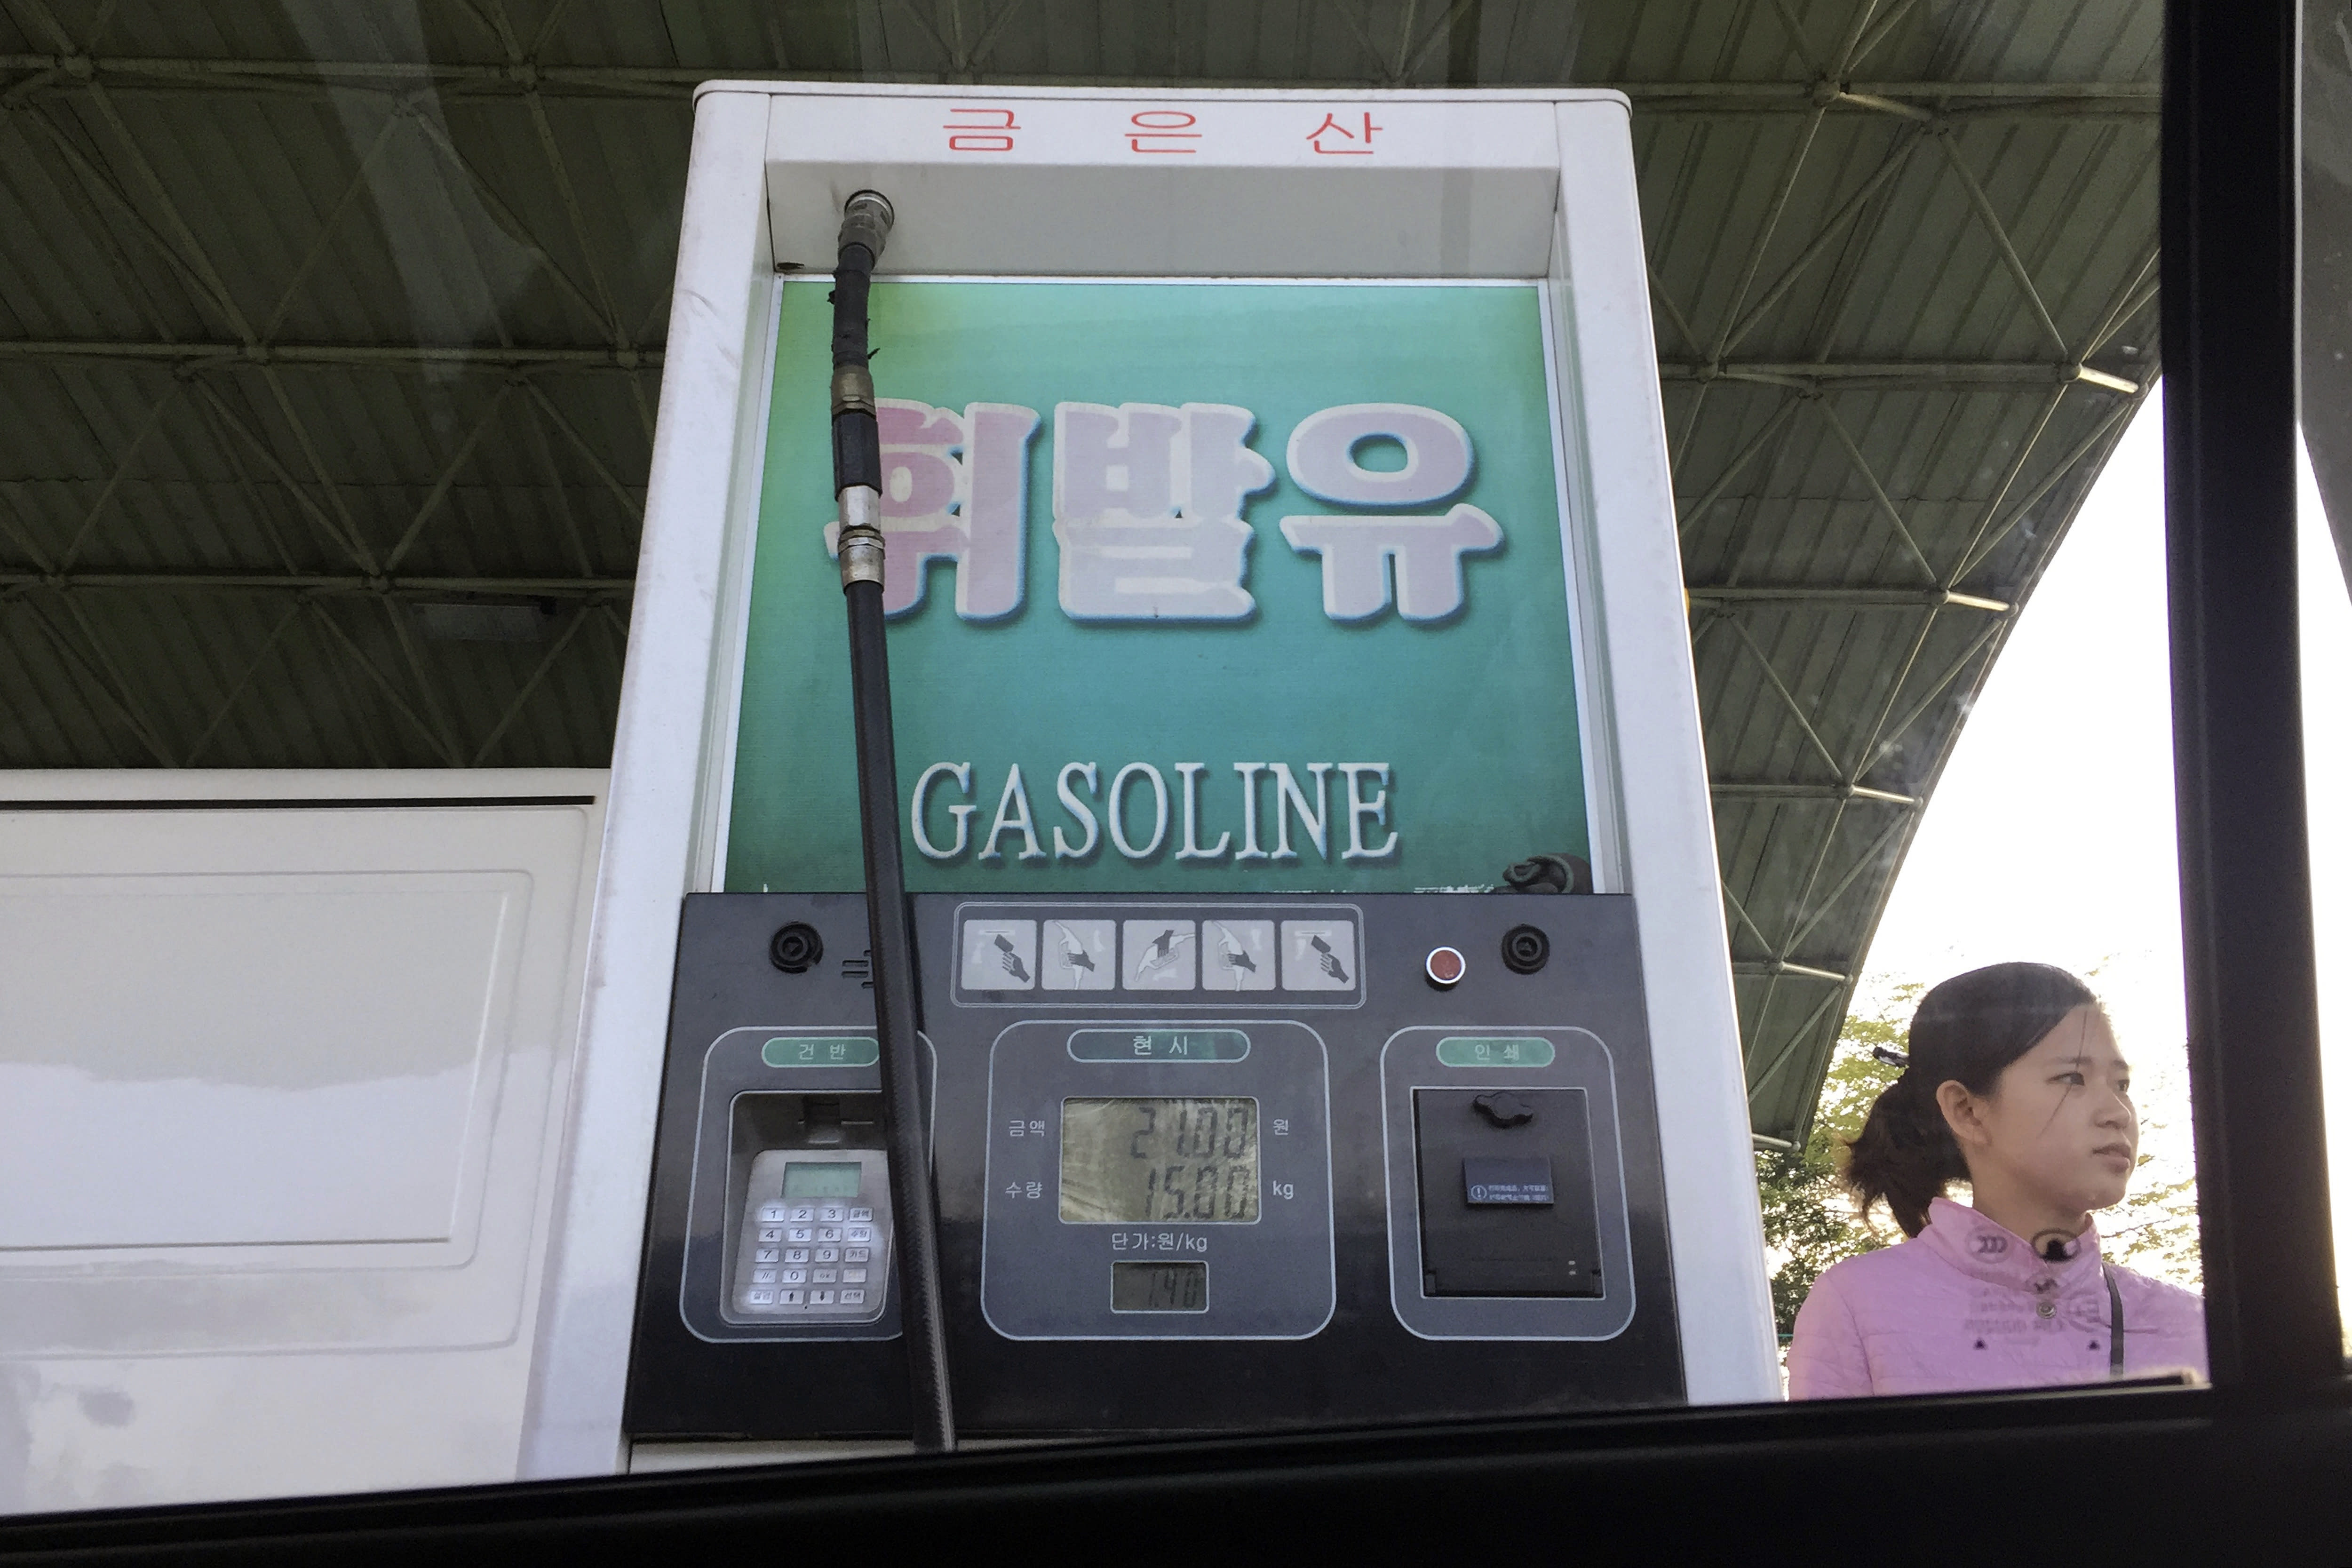 Gas Shortages in North Korean Capital Spark Rumors China is Choking the Supply